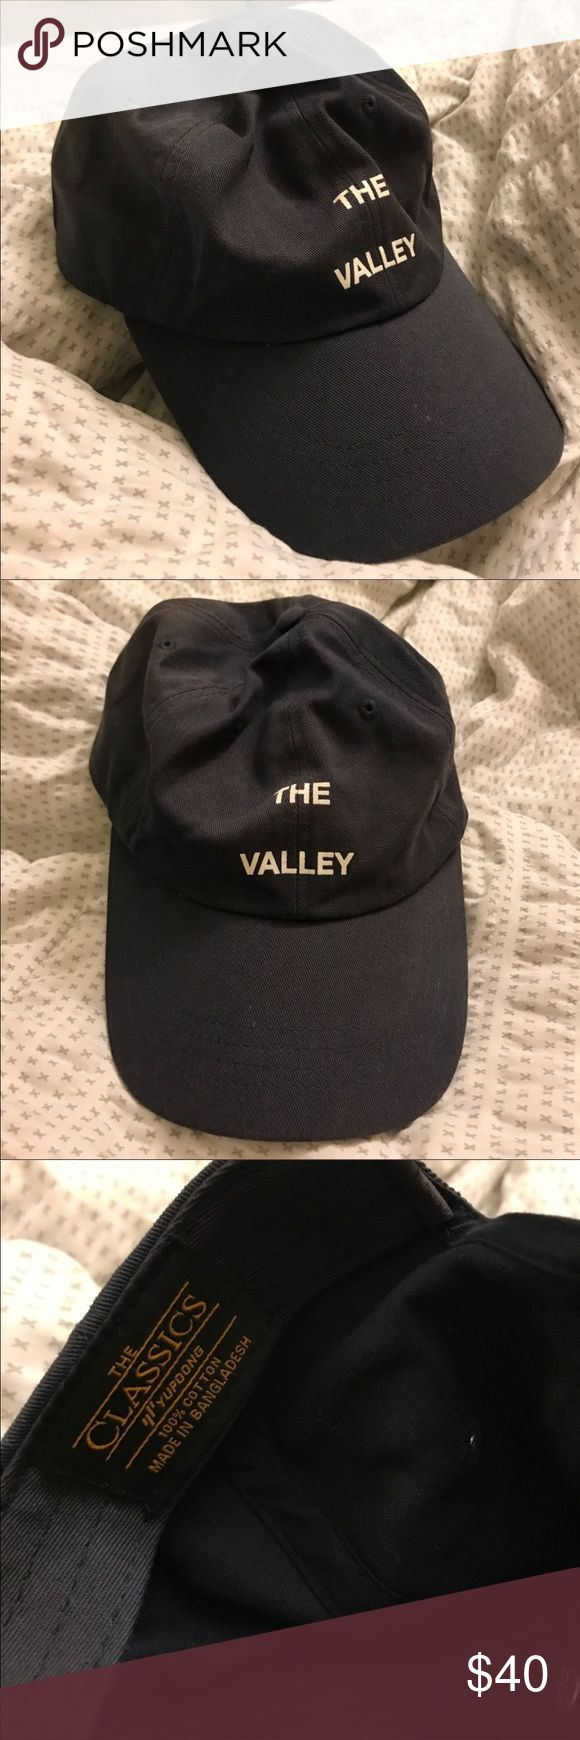 ANTISOCIAL SOCIAL CLUB The valley hat 100% Authentic ASSC the valley hat. Bought directly from the website. Color is navy blue. Anti Social Social Club Accessories Hats